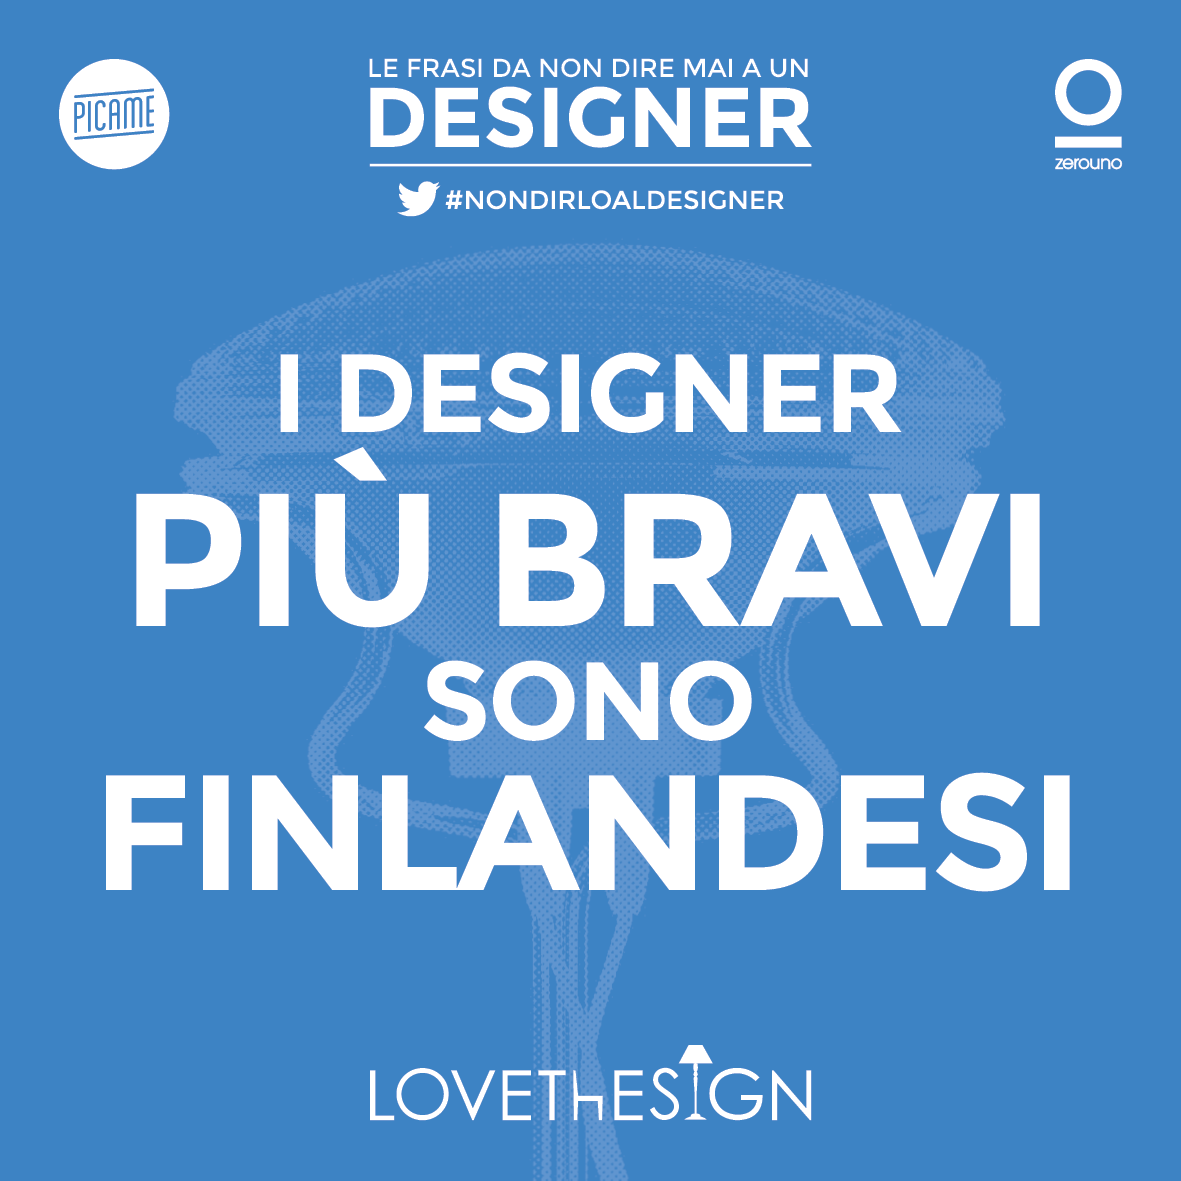 NonDirloalDesigner-Picame-Lovethesign-7